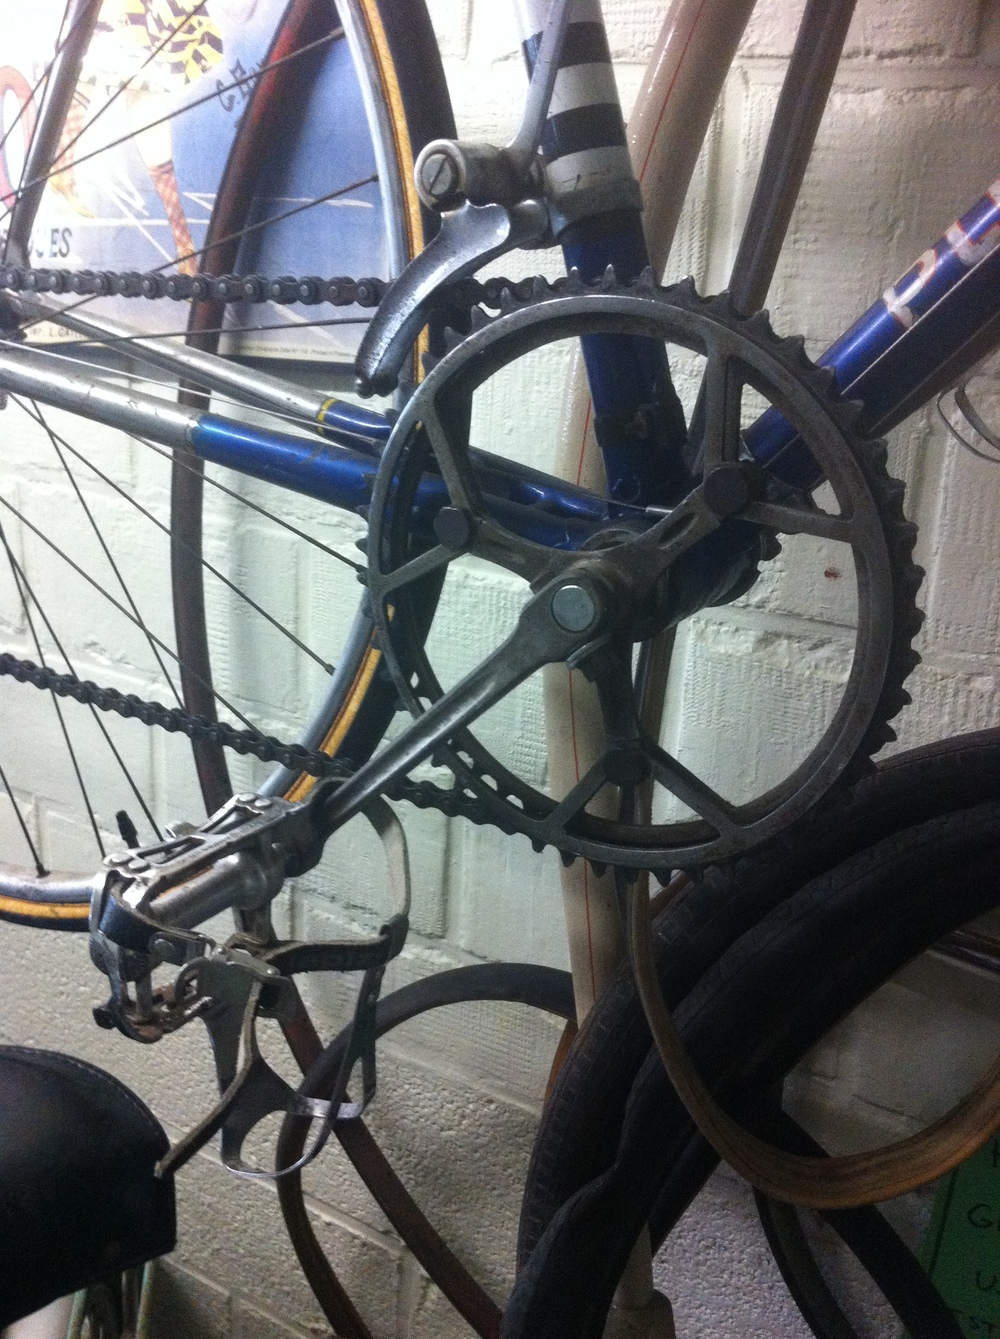 ... not exactly Shimano Di2 and the front changer had a hand operated lever (no cables) ...